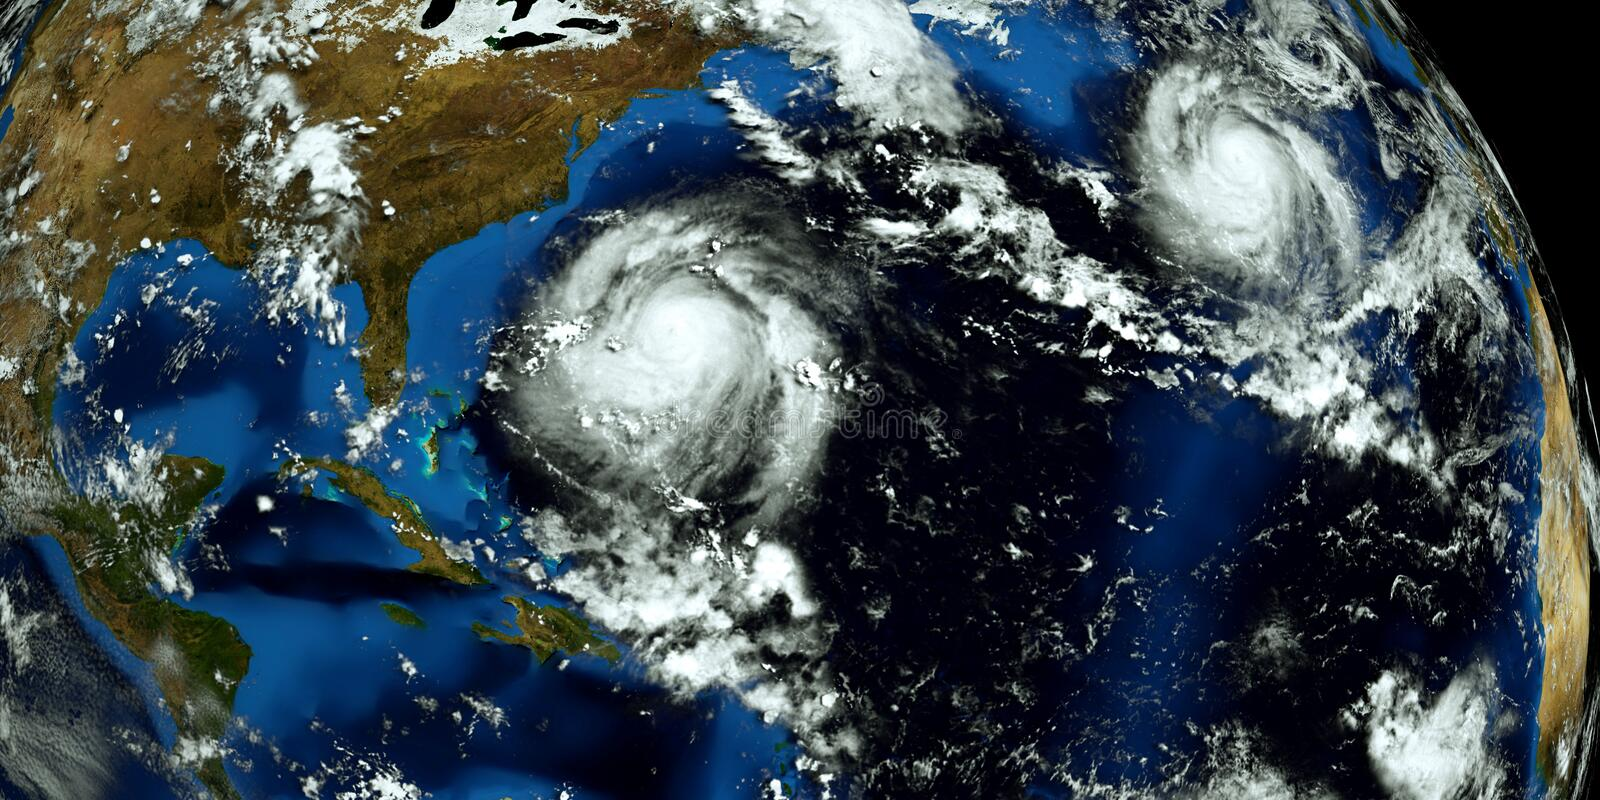 Extremely detailed and realistic high resolution 3D illustration of 2 hurricanes approaching the USA. Shot from Space. Elements of. This image are furnished by stock image